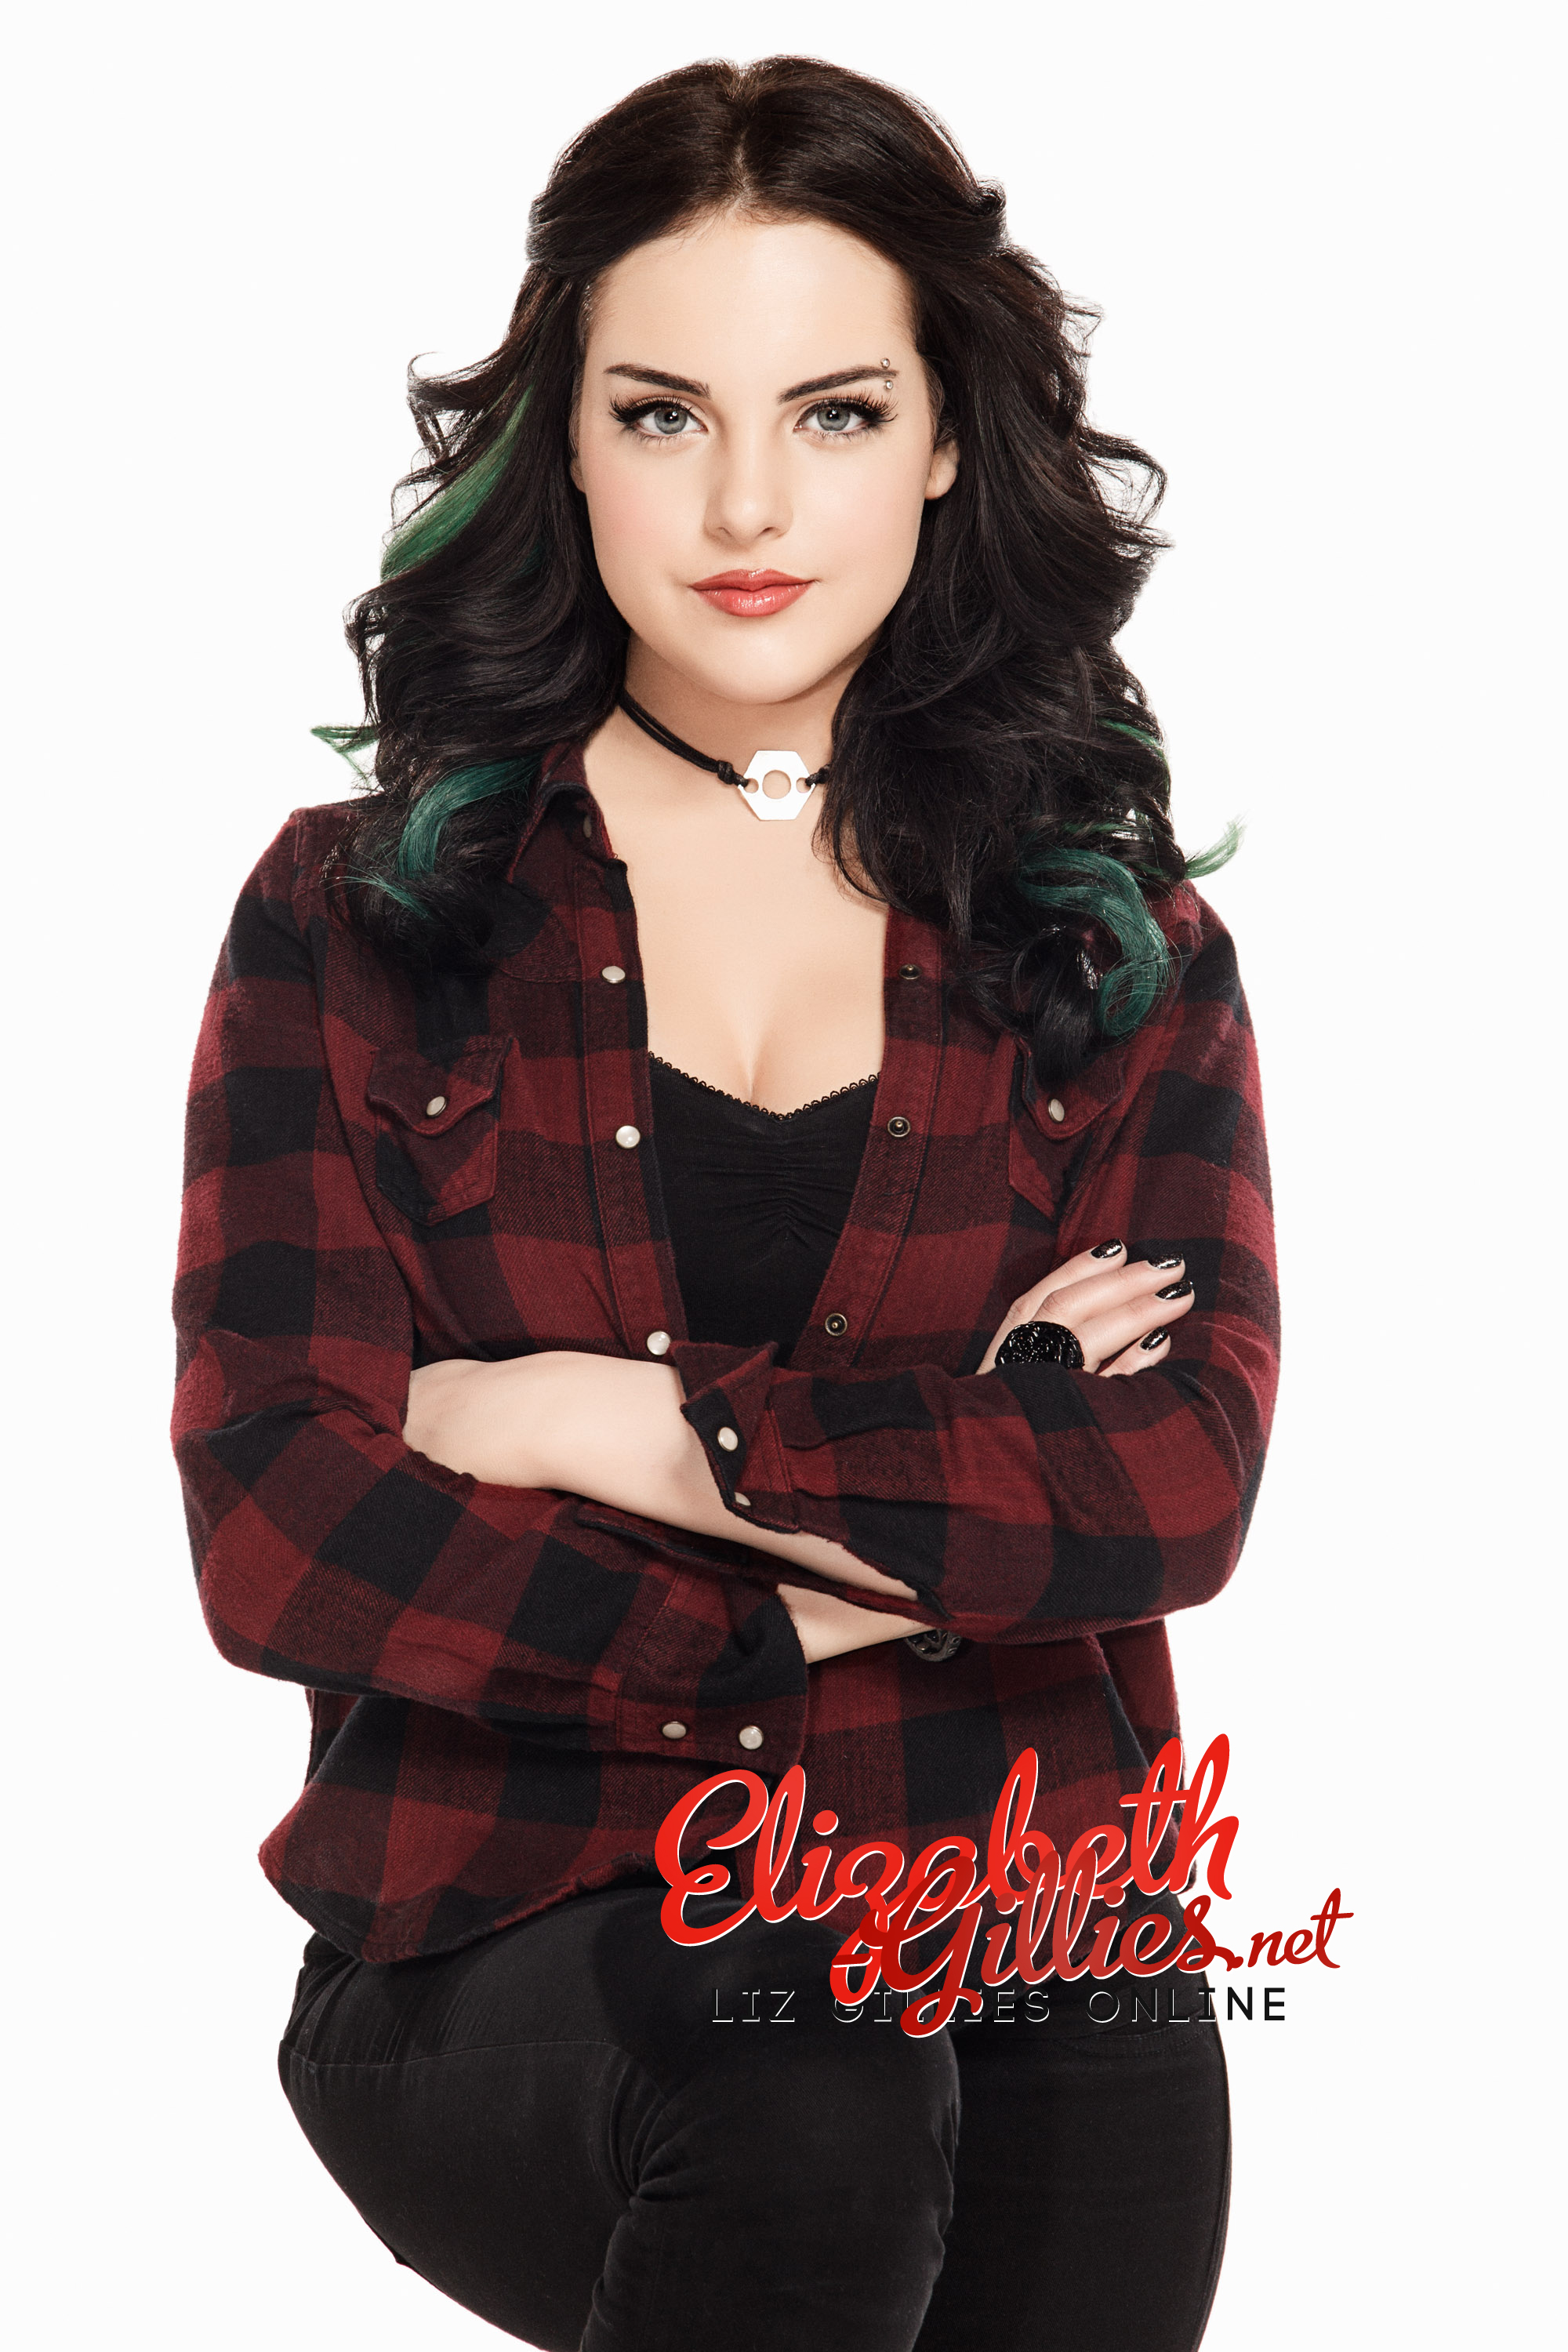 Victorious Elizabeth Gillies You Dont Know Me Music Video ...